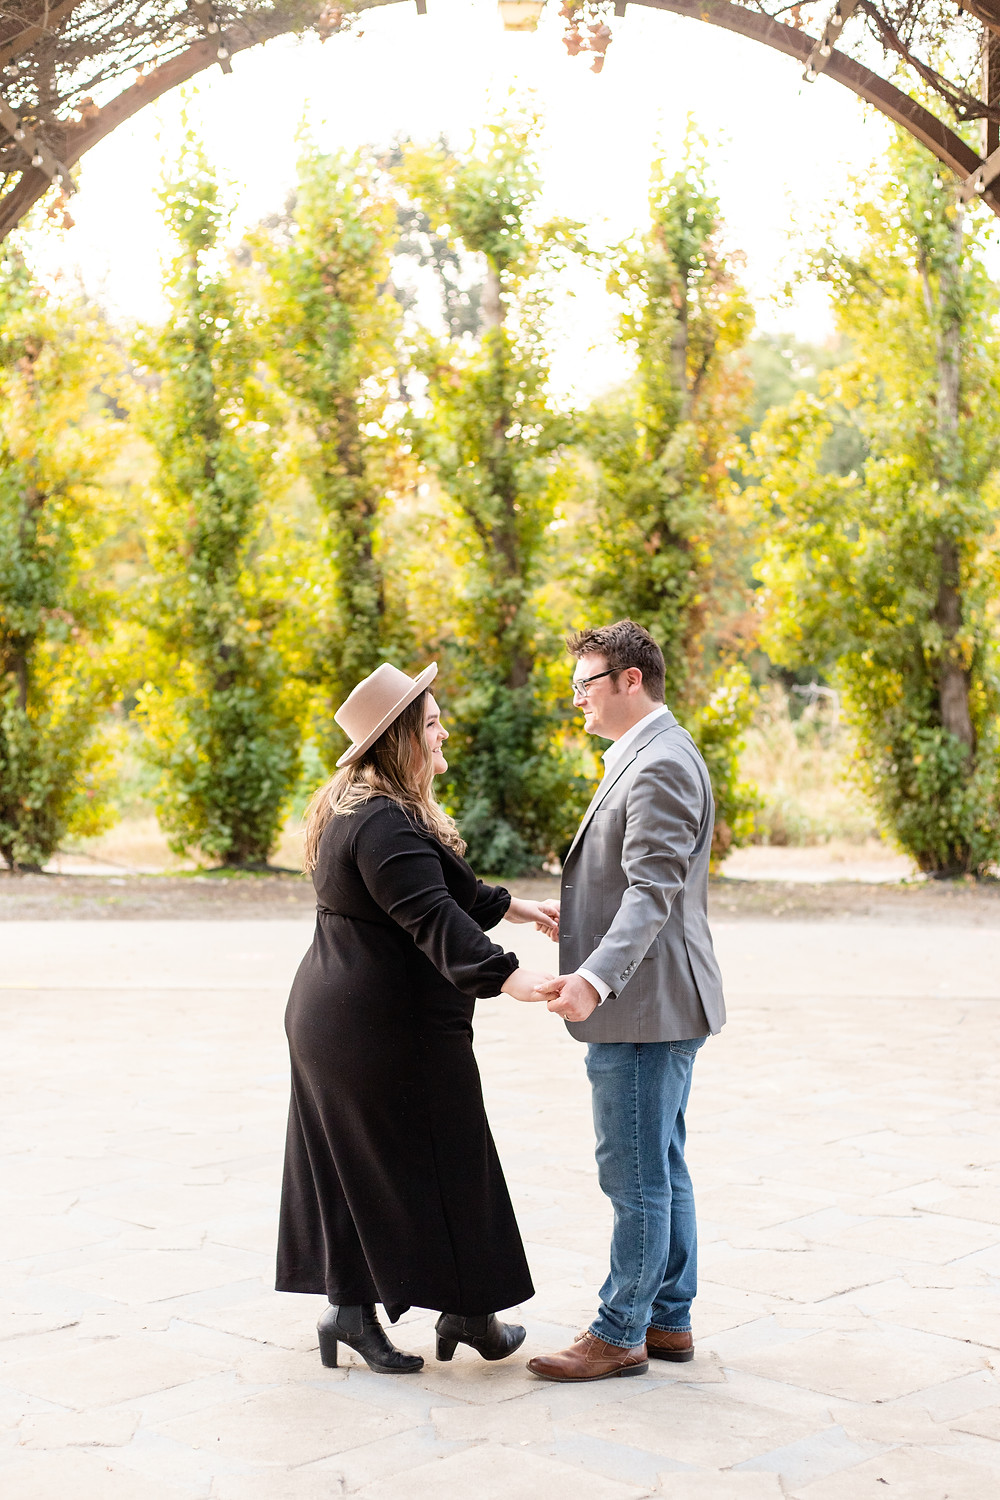 A couples anniversary session by Ashley Norton Photography in Clovis, CA.